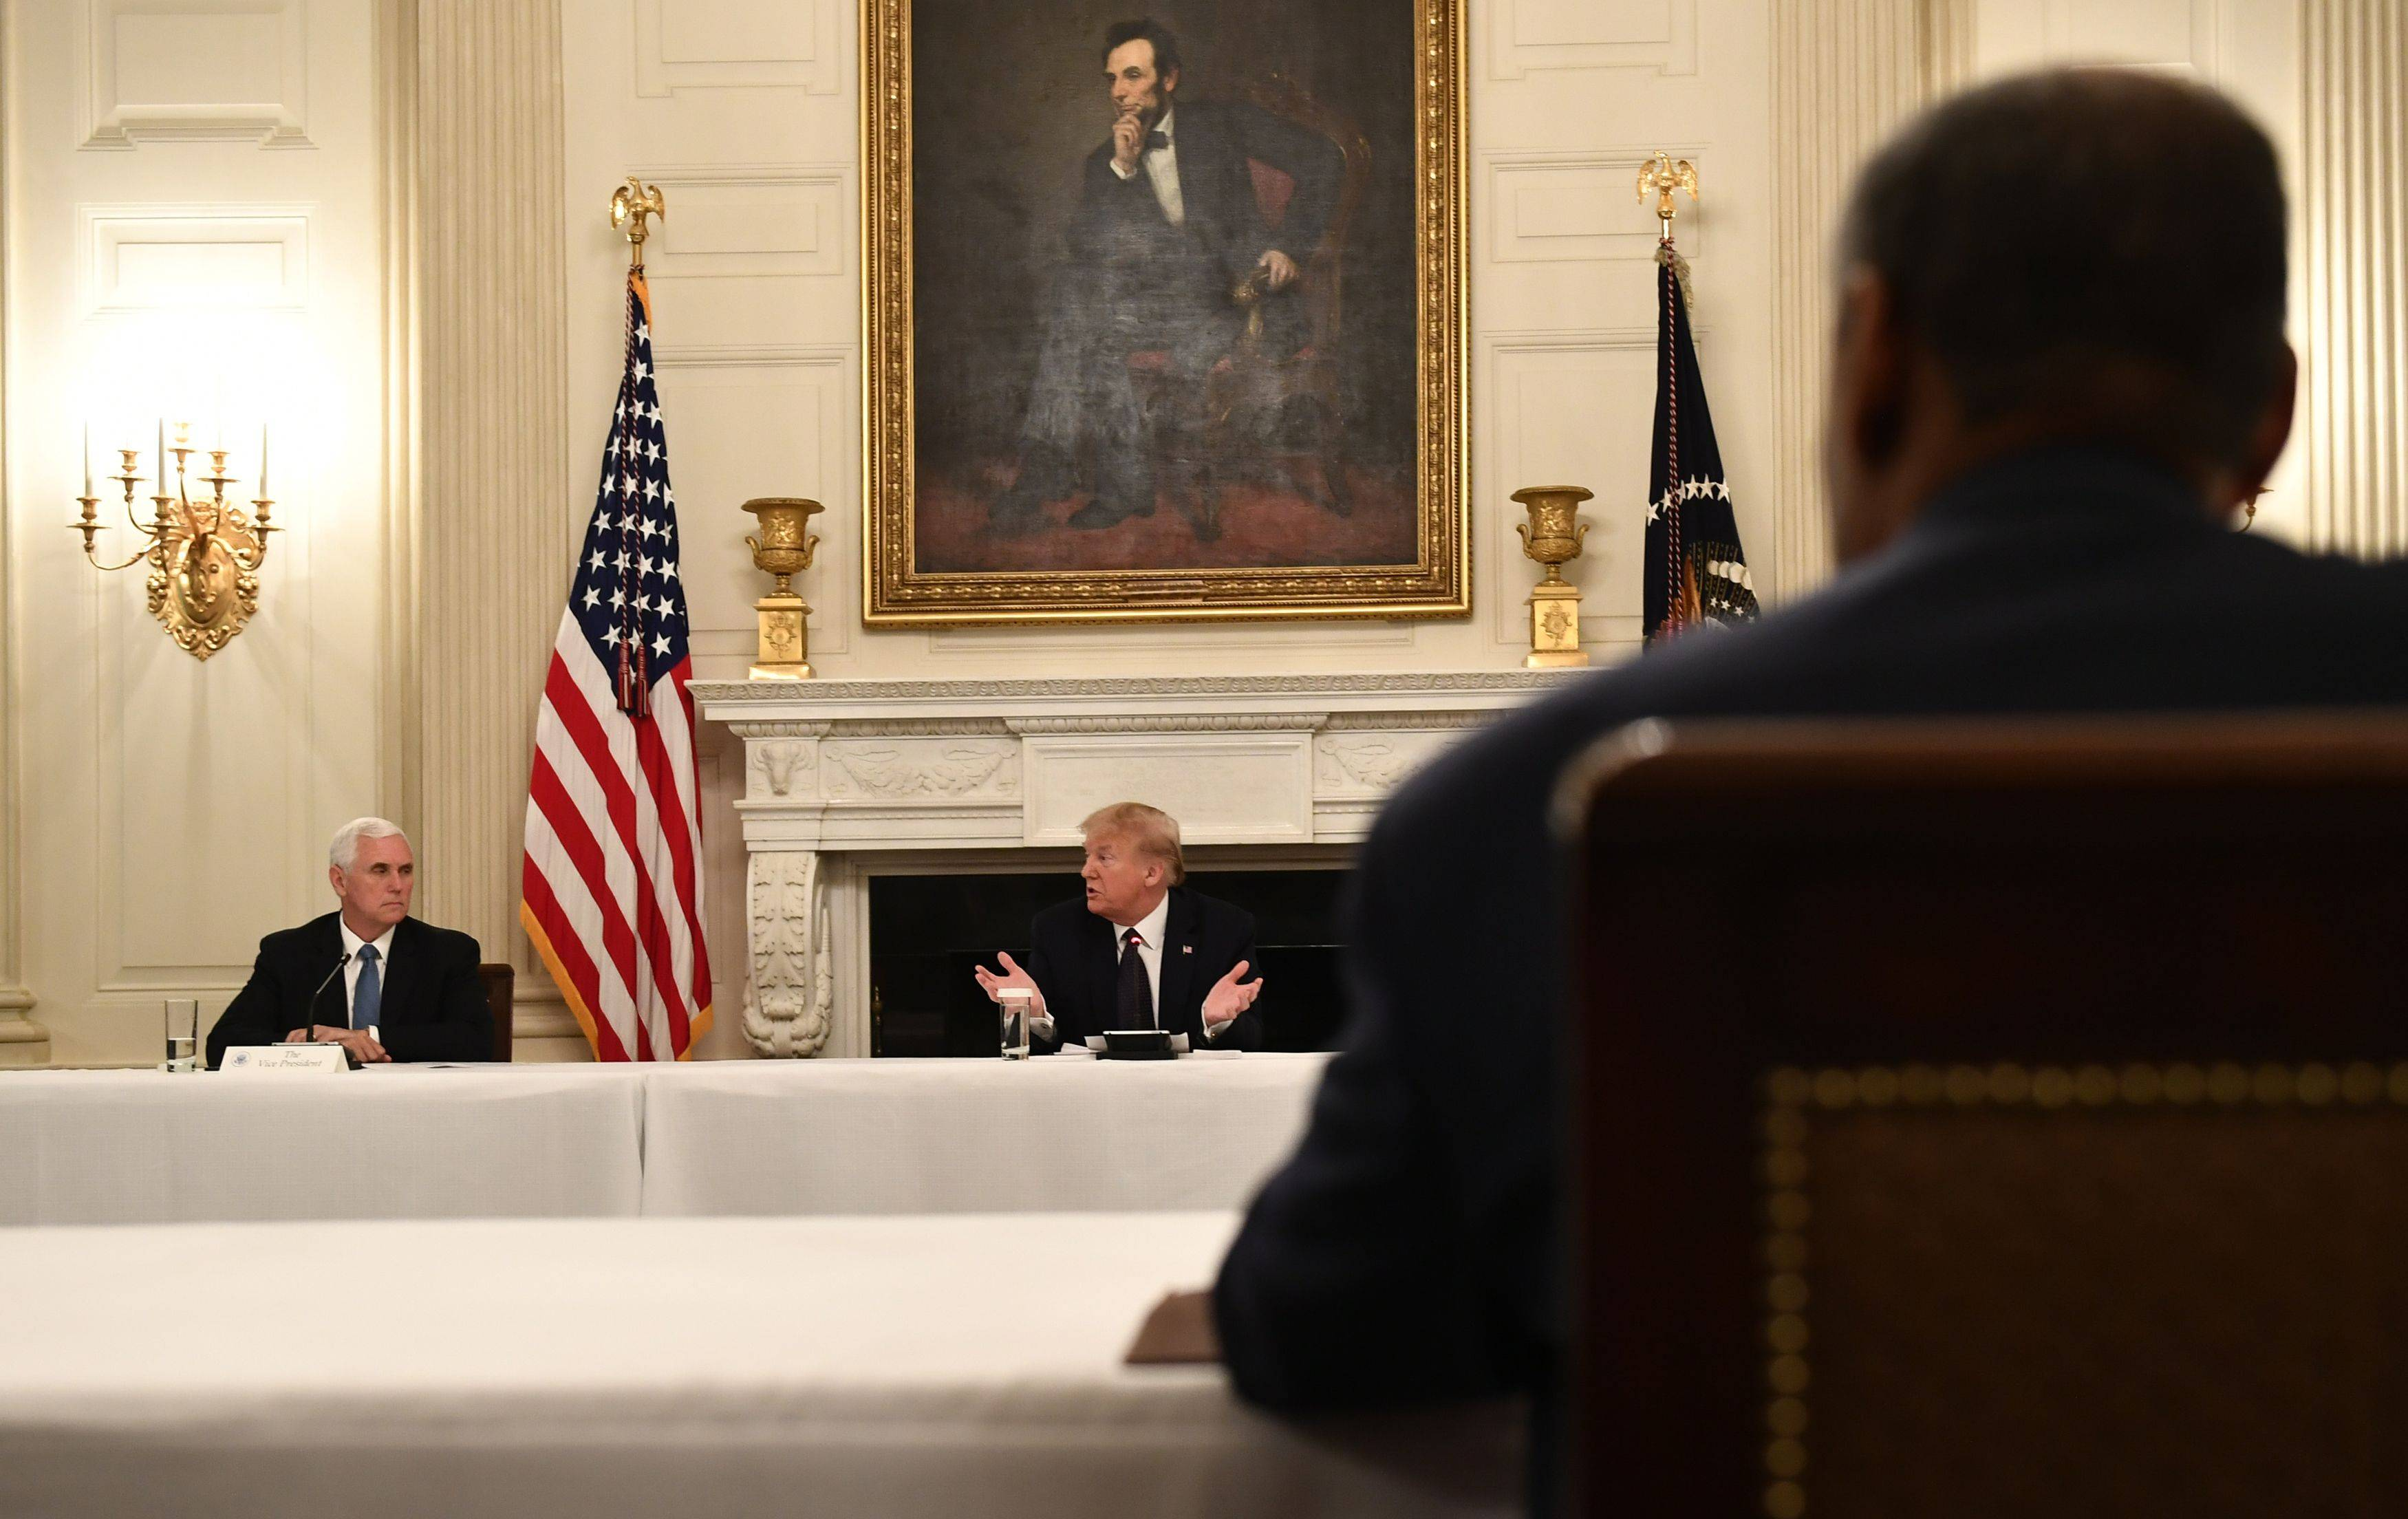 Trump speaks at a coronavirus round table on Monday, a few days after he fired the State Department inspector general without fully explaining why. (BRENDAN SMIALOWSKI/AFP via Getty Images)